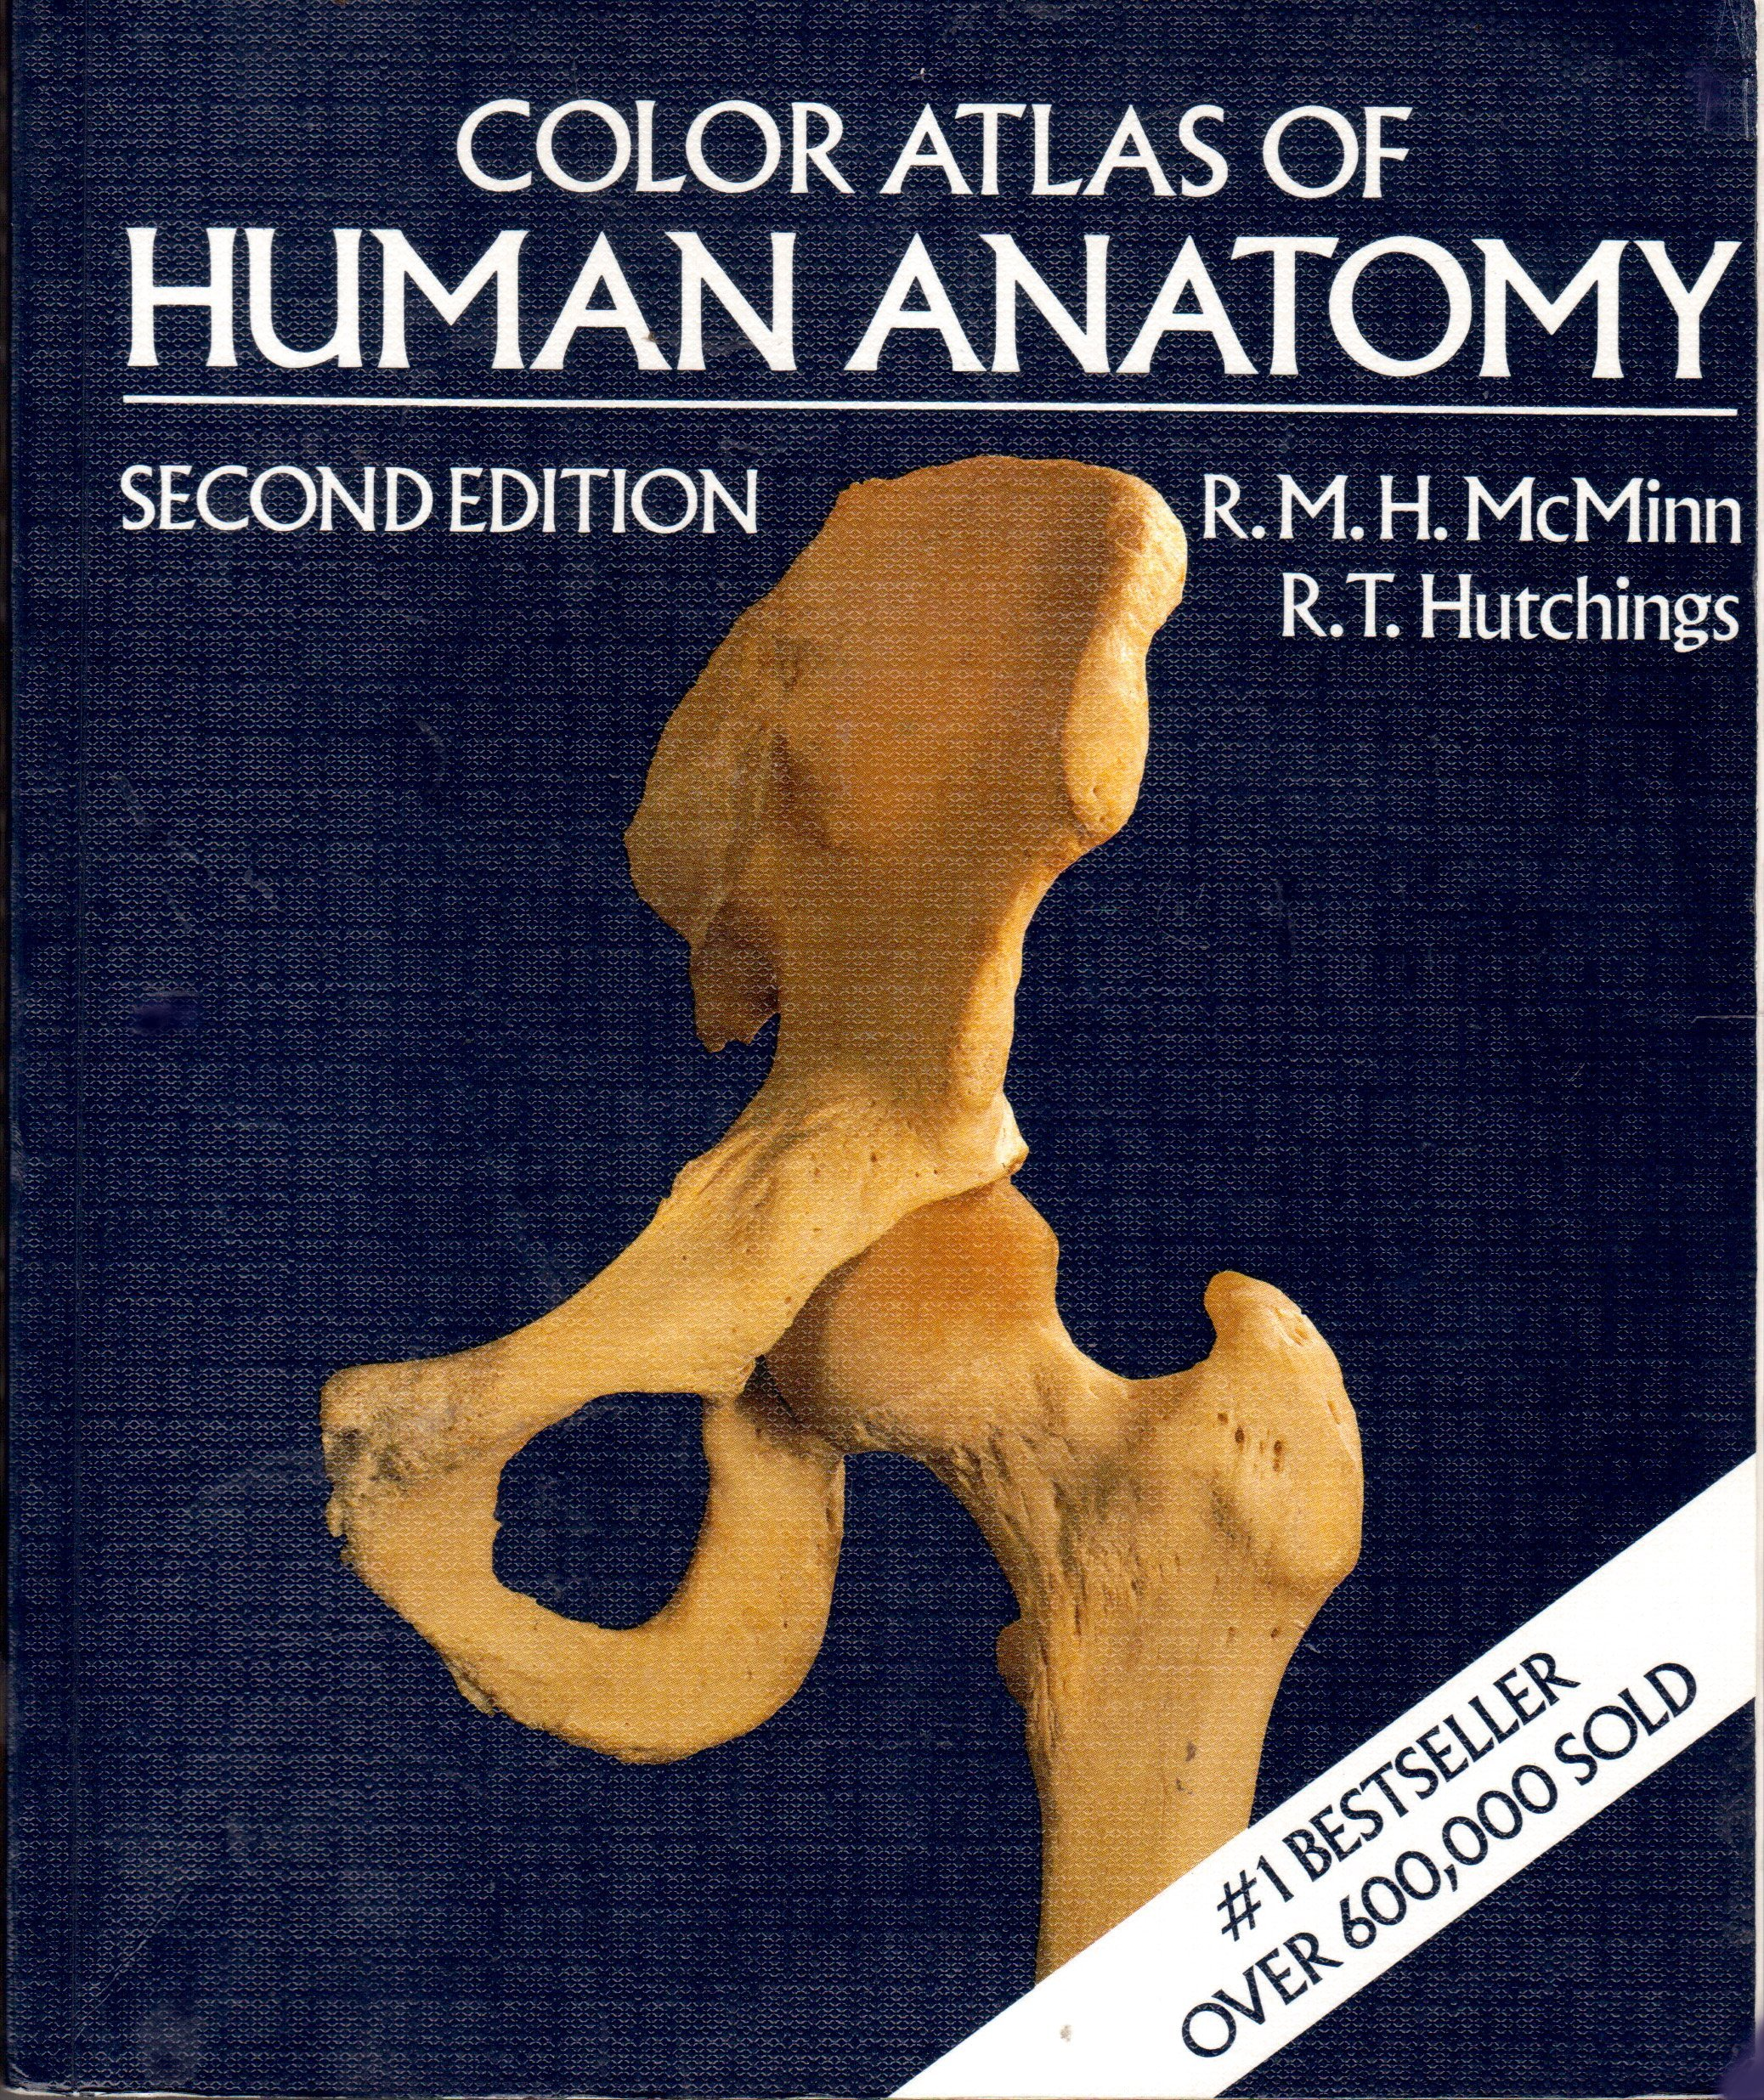 A Color Atlas of Human Anatomy: H. R. M. McMinn, R. T. Hutchings ...